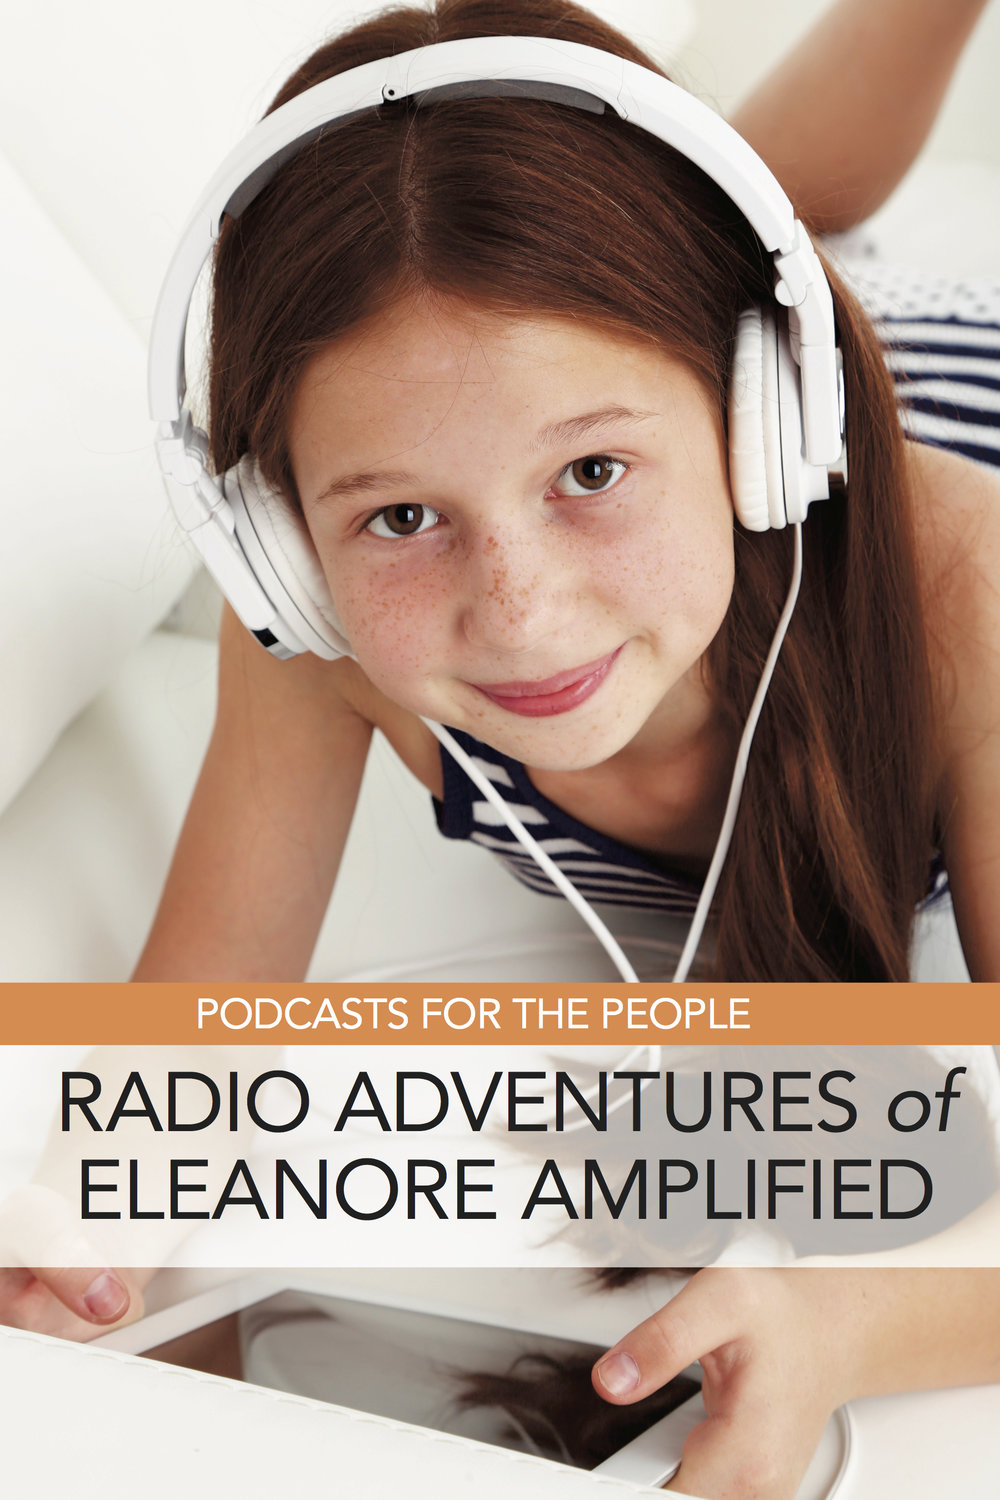 Find Your Next Podcast Obsession: The Radio Adventures of Eleanore Amplified